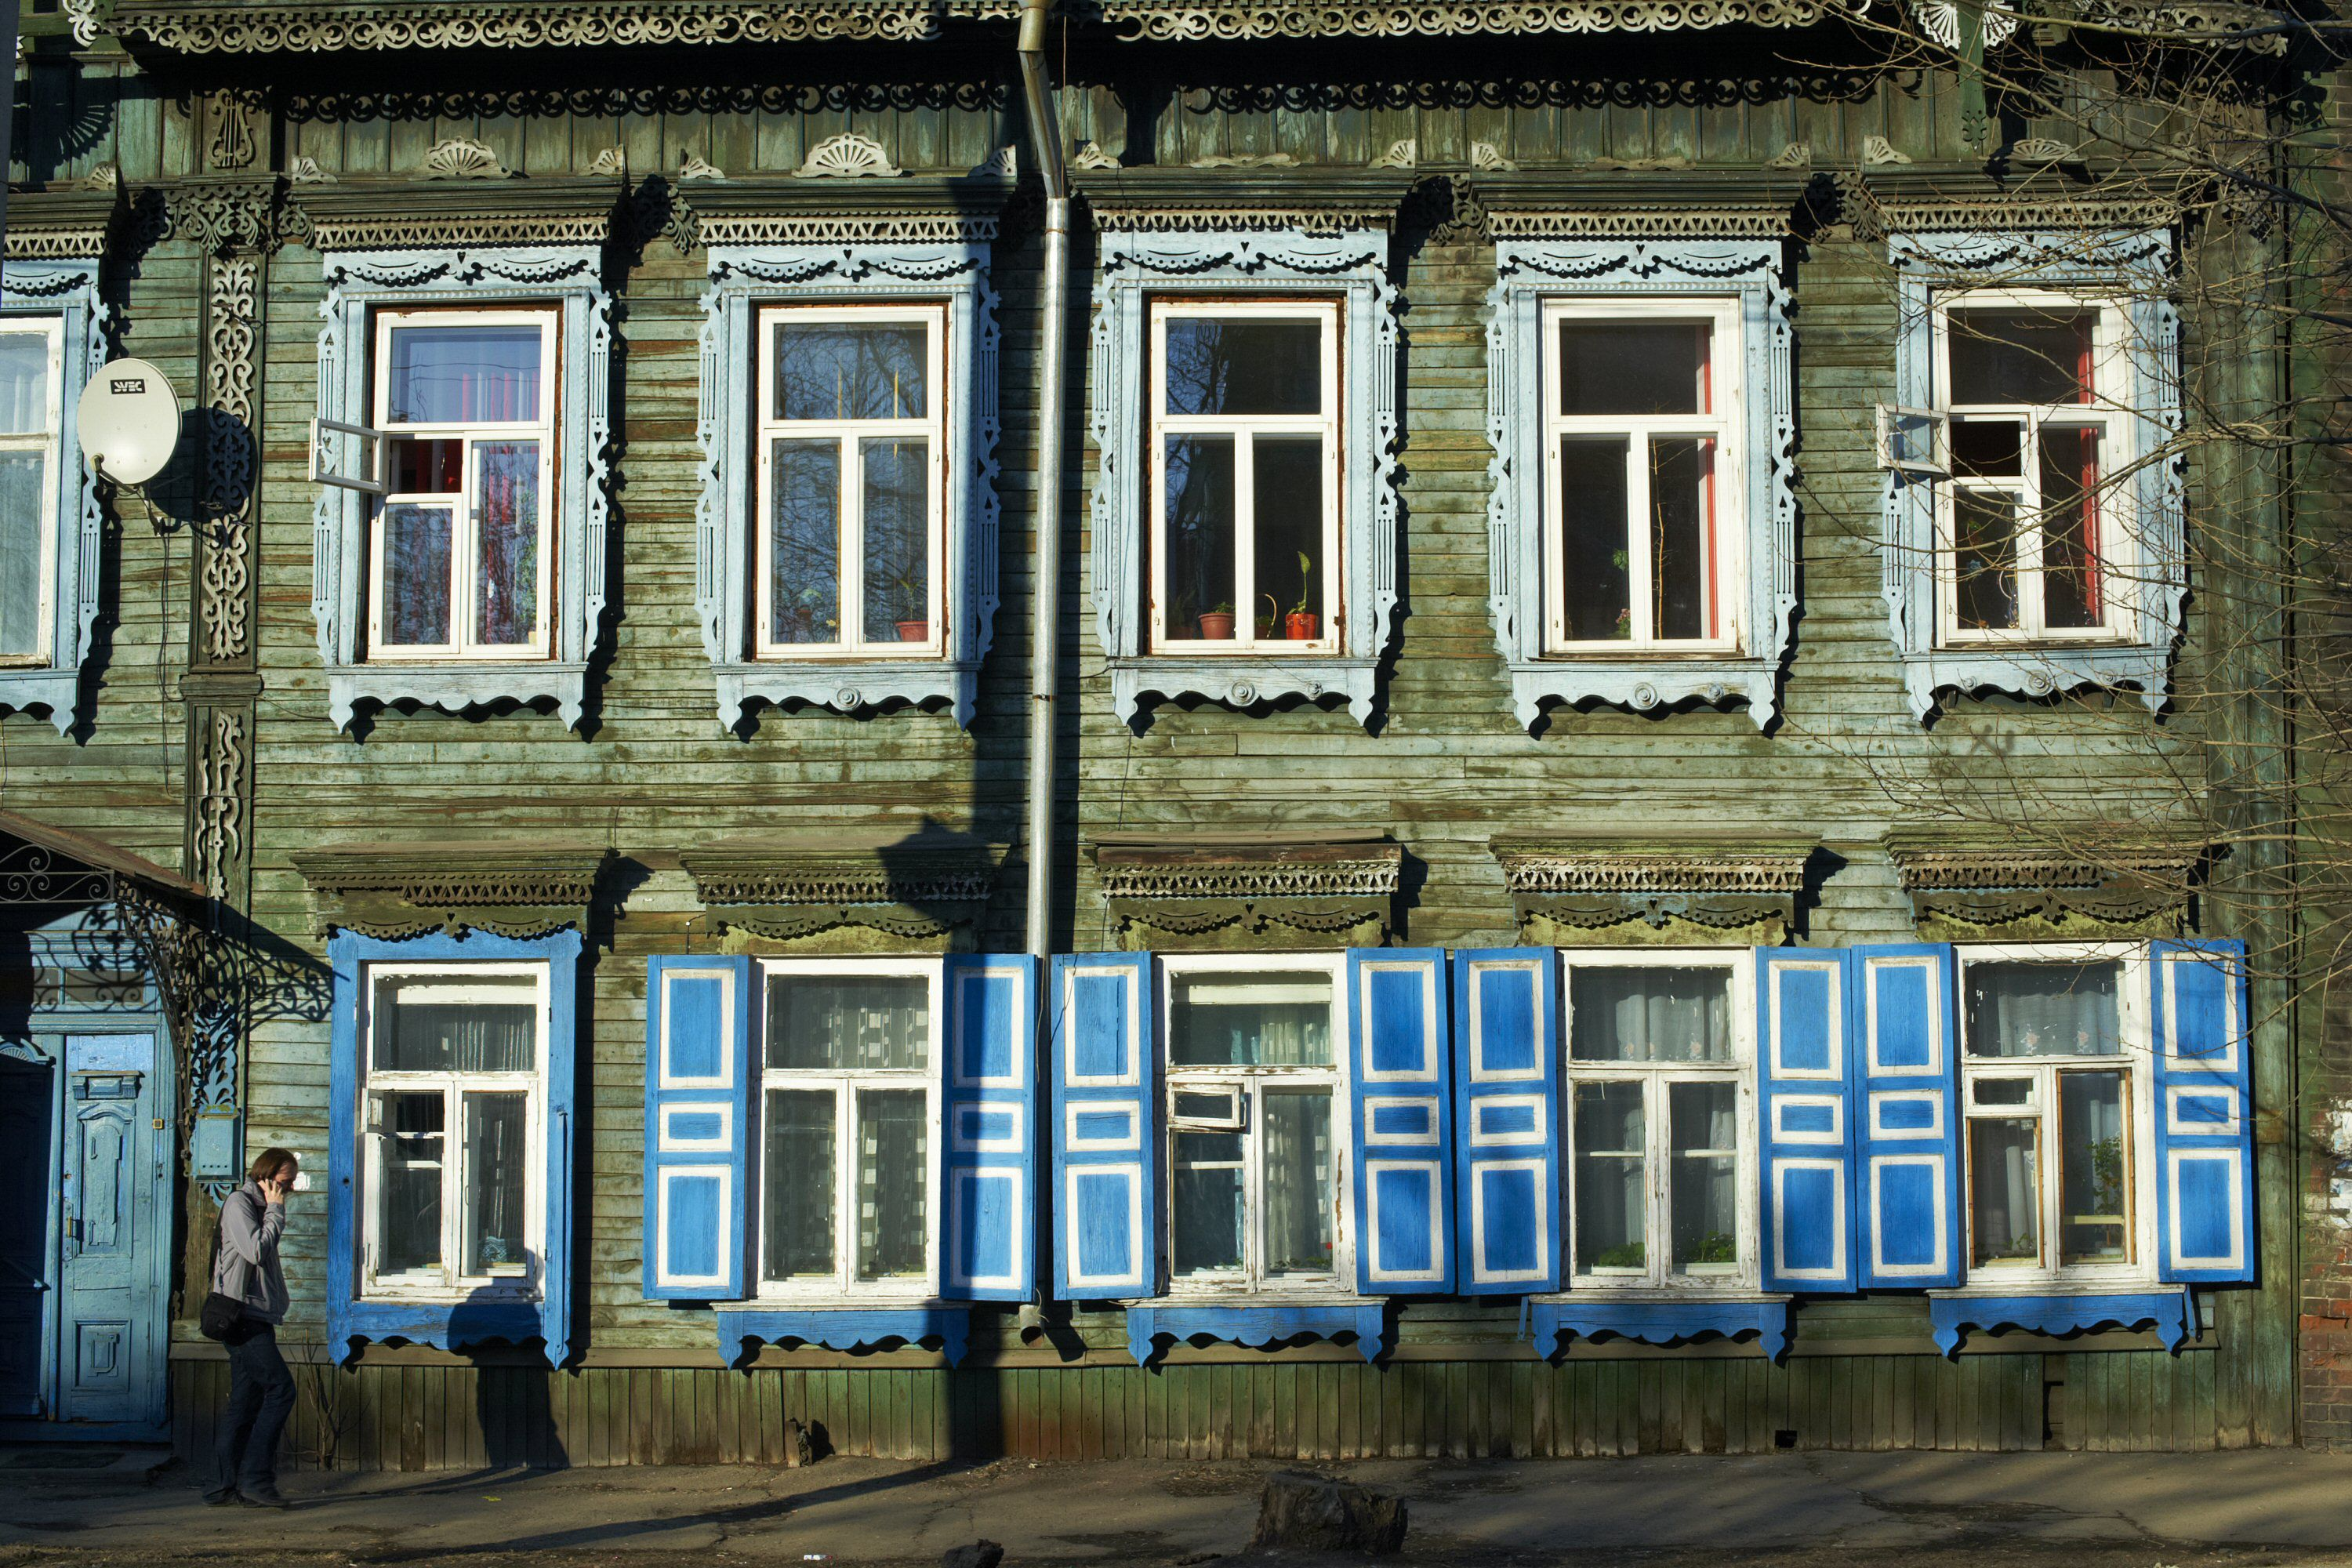 Two story wooden house with ornate wooden window trimming and colorful blue shutters